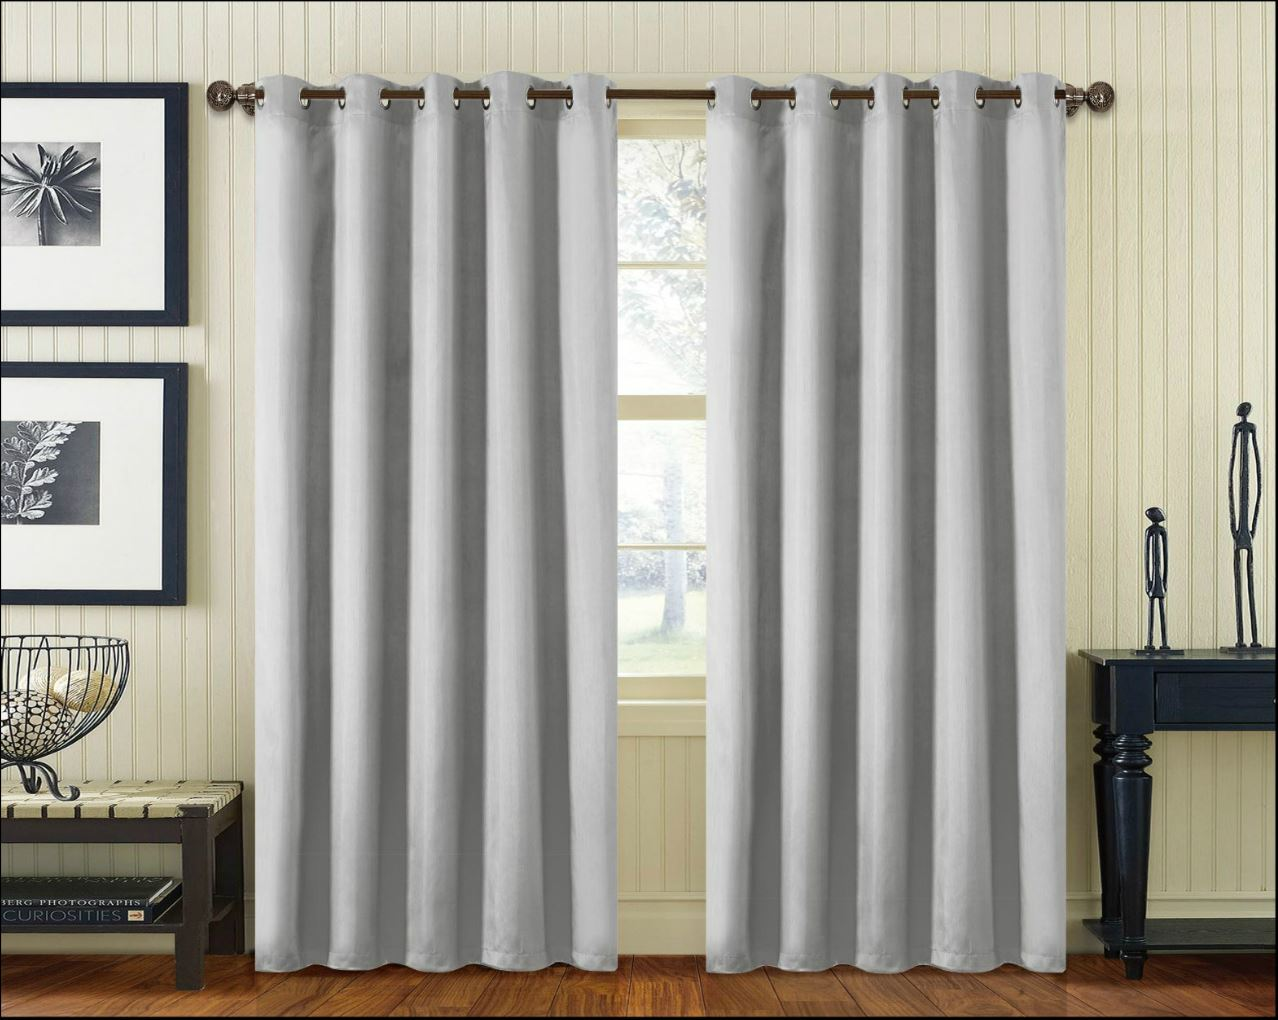 Pair Faux Silk Curtain Ring Top Eyelet Fully Lined Super Soft Ready Made Bedroom Ebay